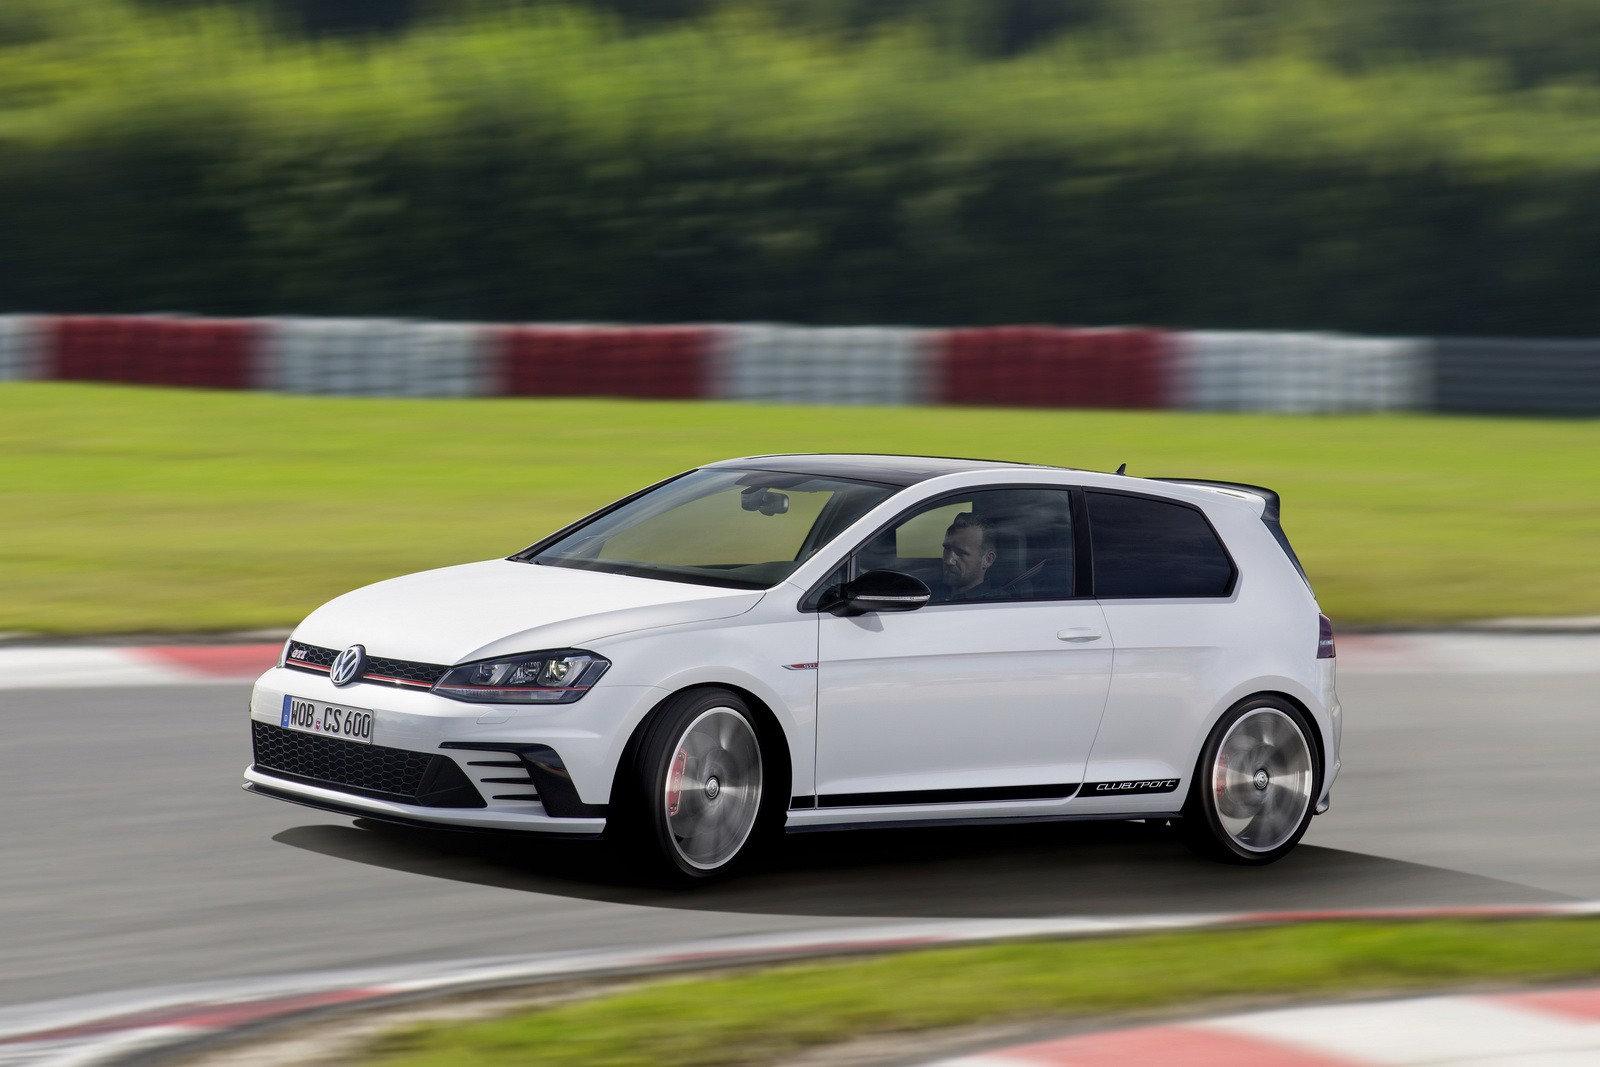 Vw Gti 0 60 >> 2016 Golf Gti 0 60 Best Car Update 2019 2020 By Thestellarcafe